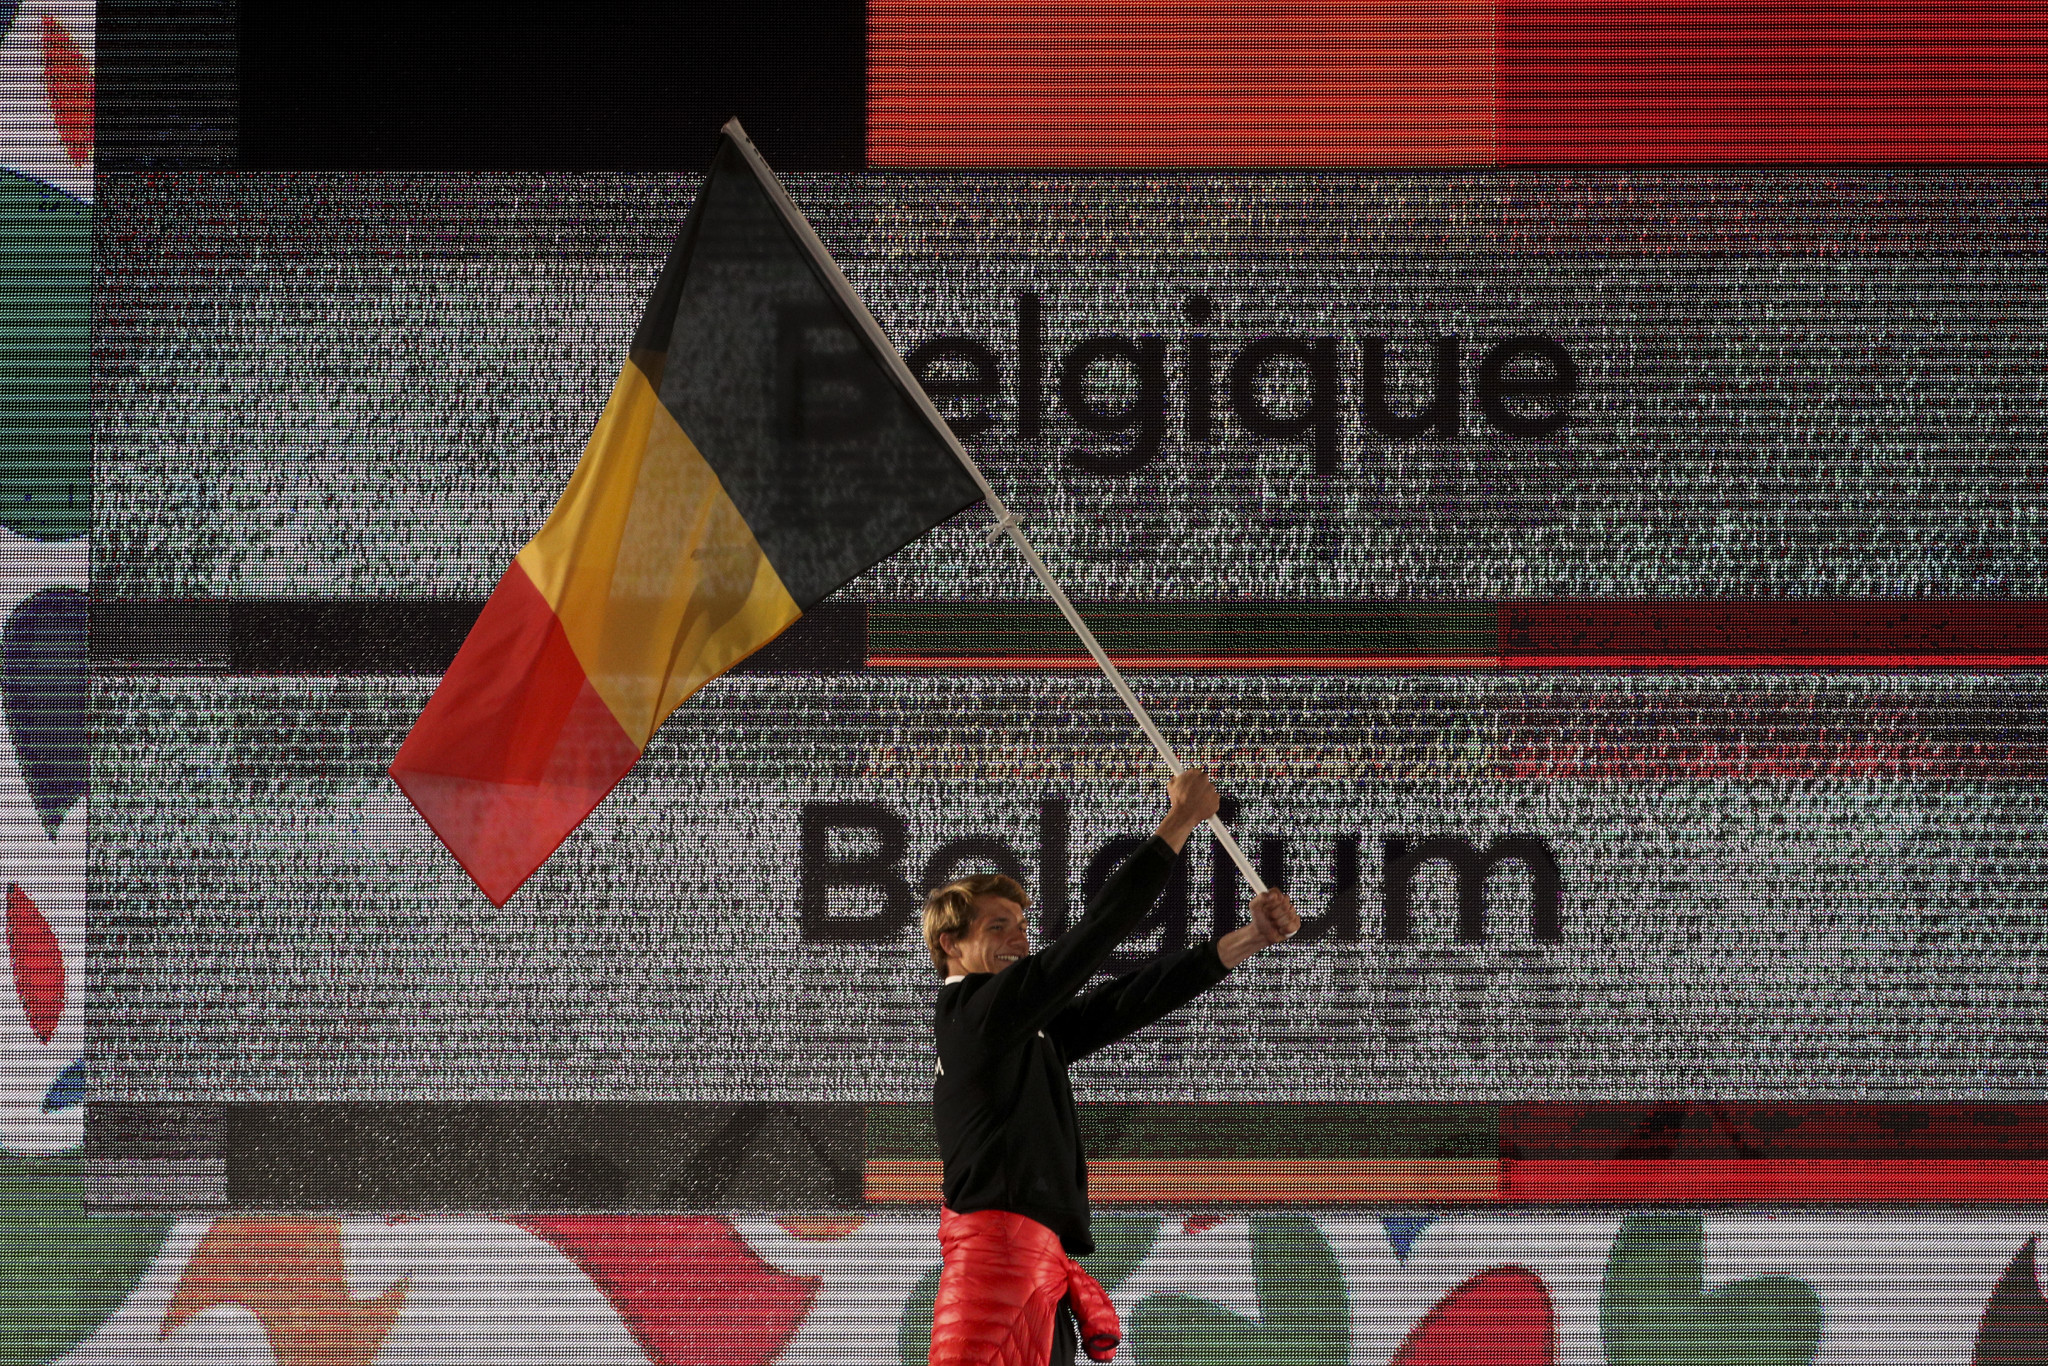 Belgian Olympic Committee asks Government for vaccinations for Olympic athletes